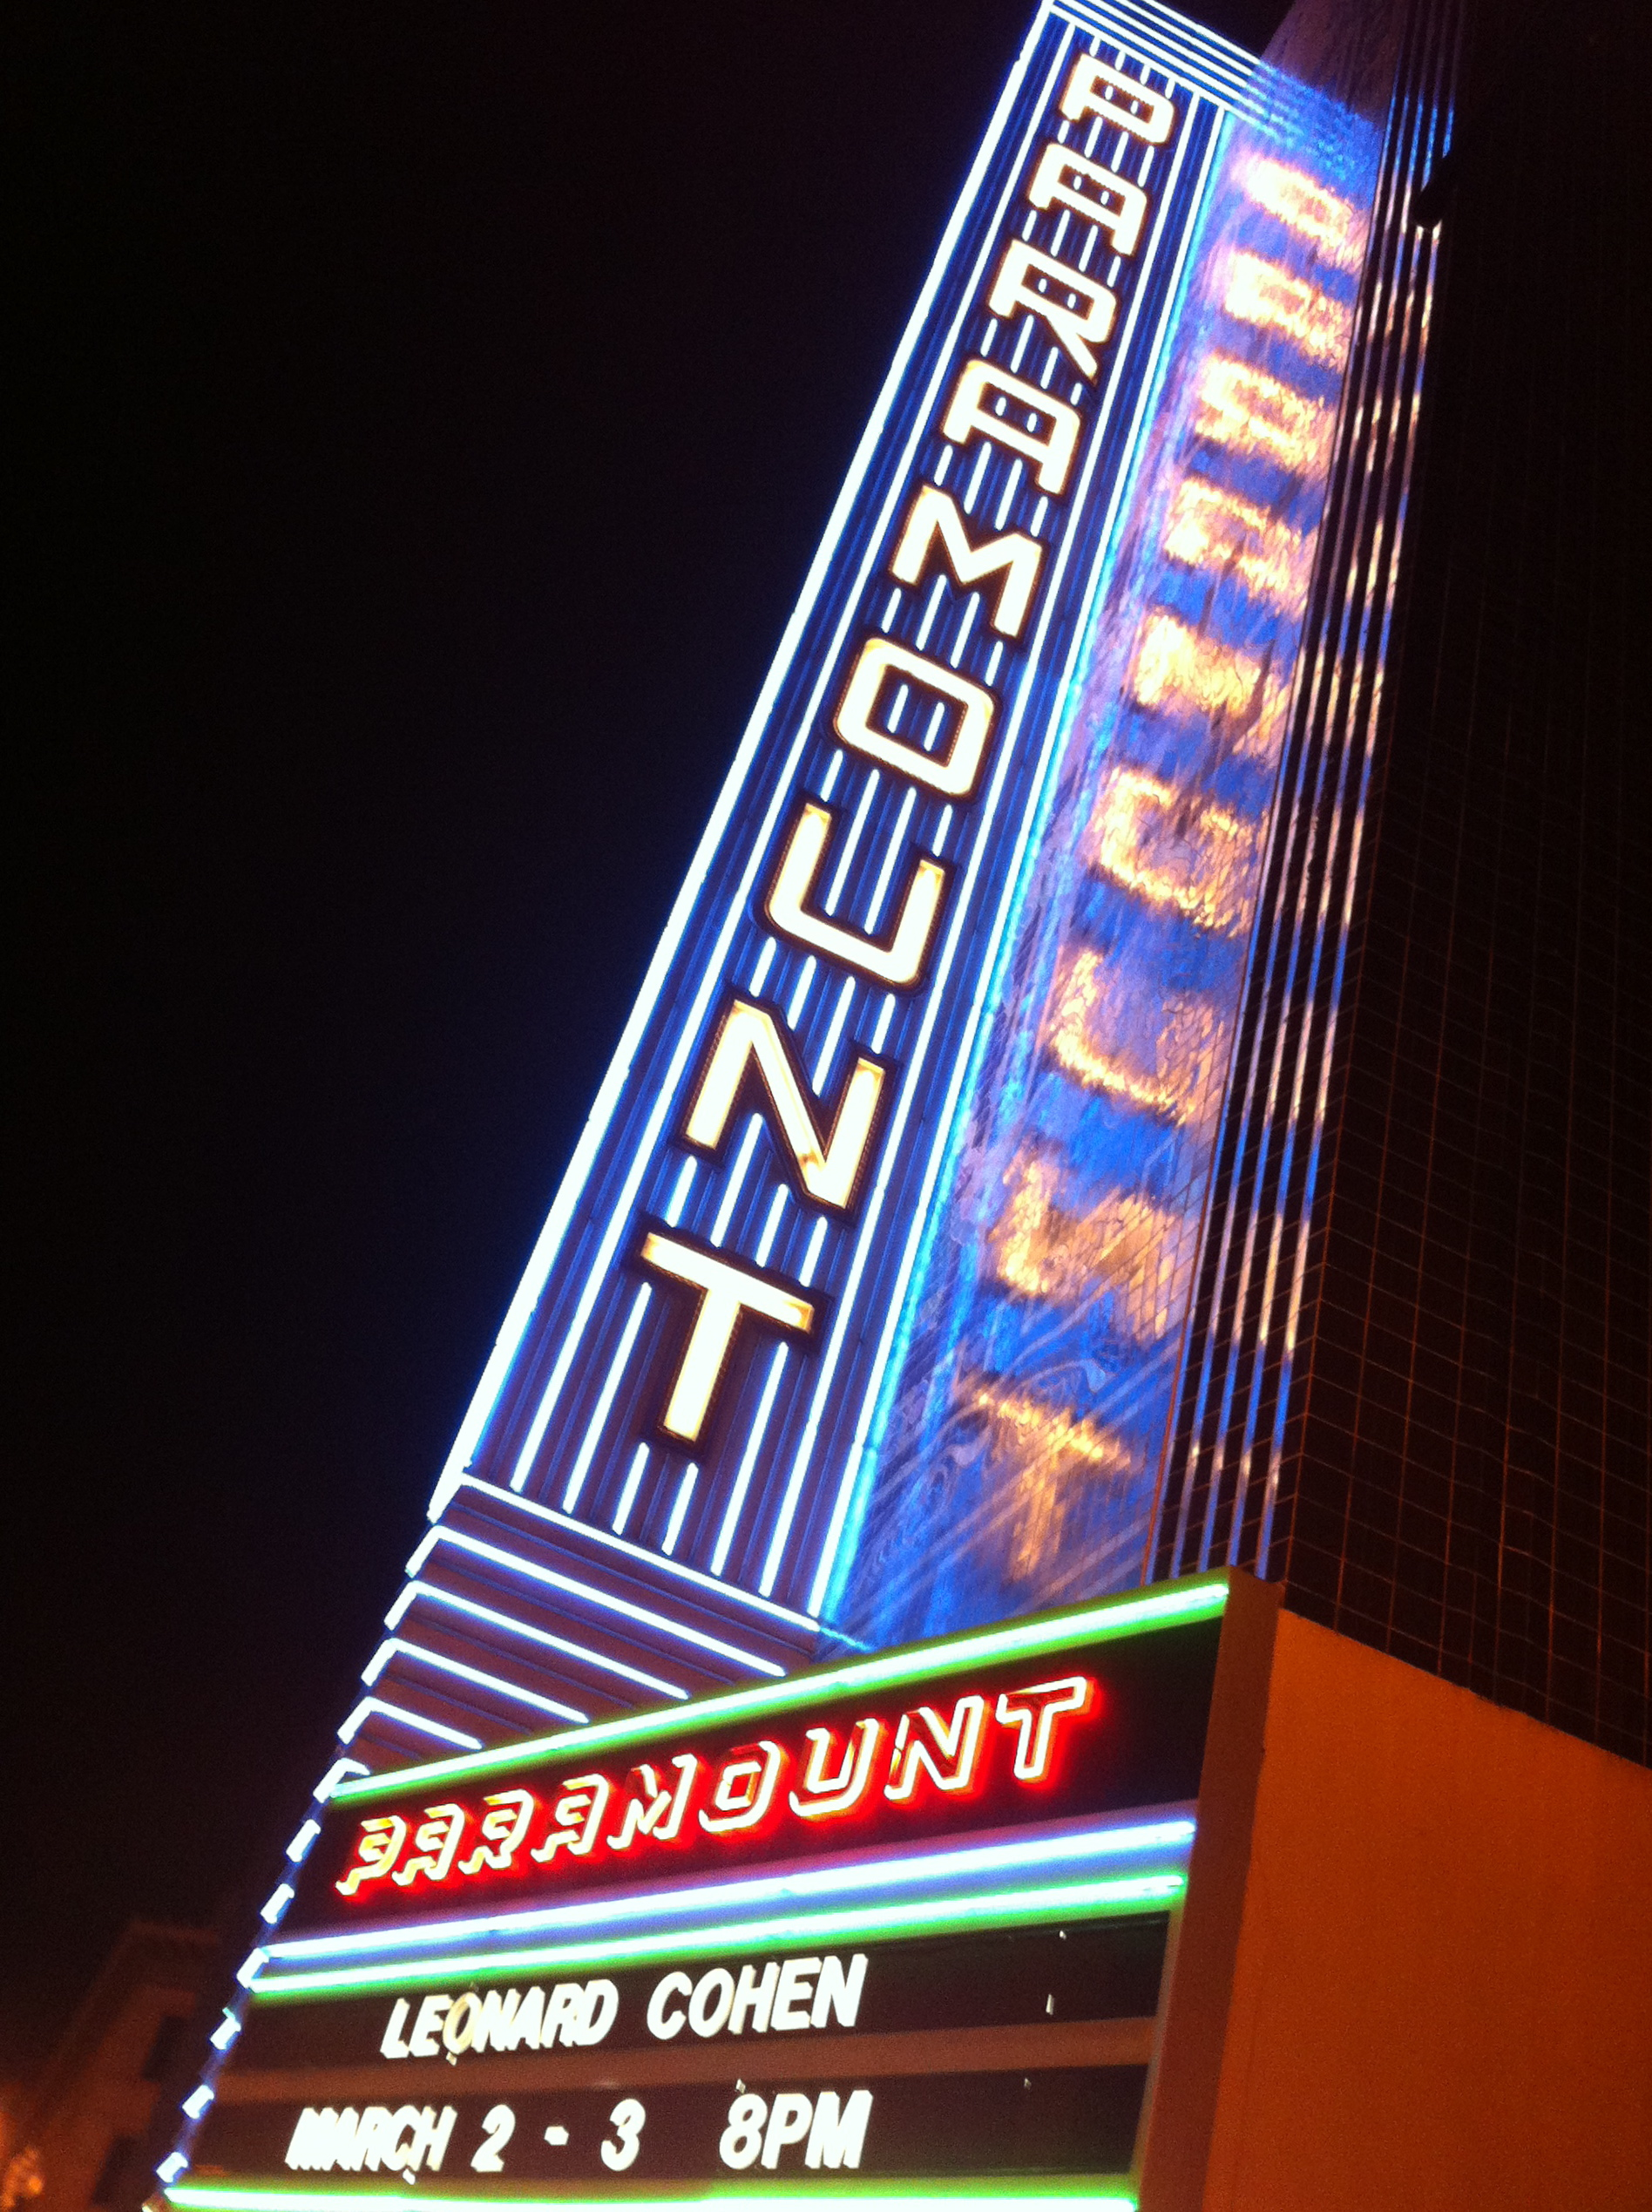 Leonard Cohen at the Paramount, 3/2/13